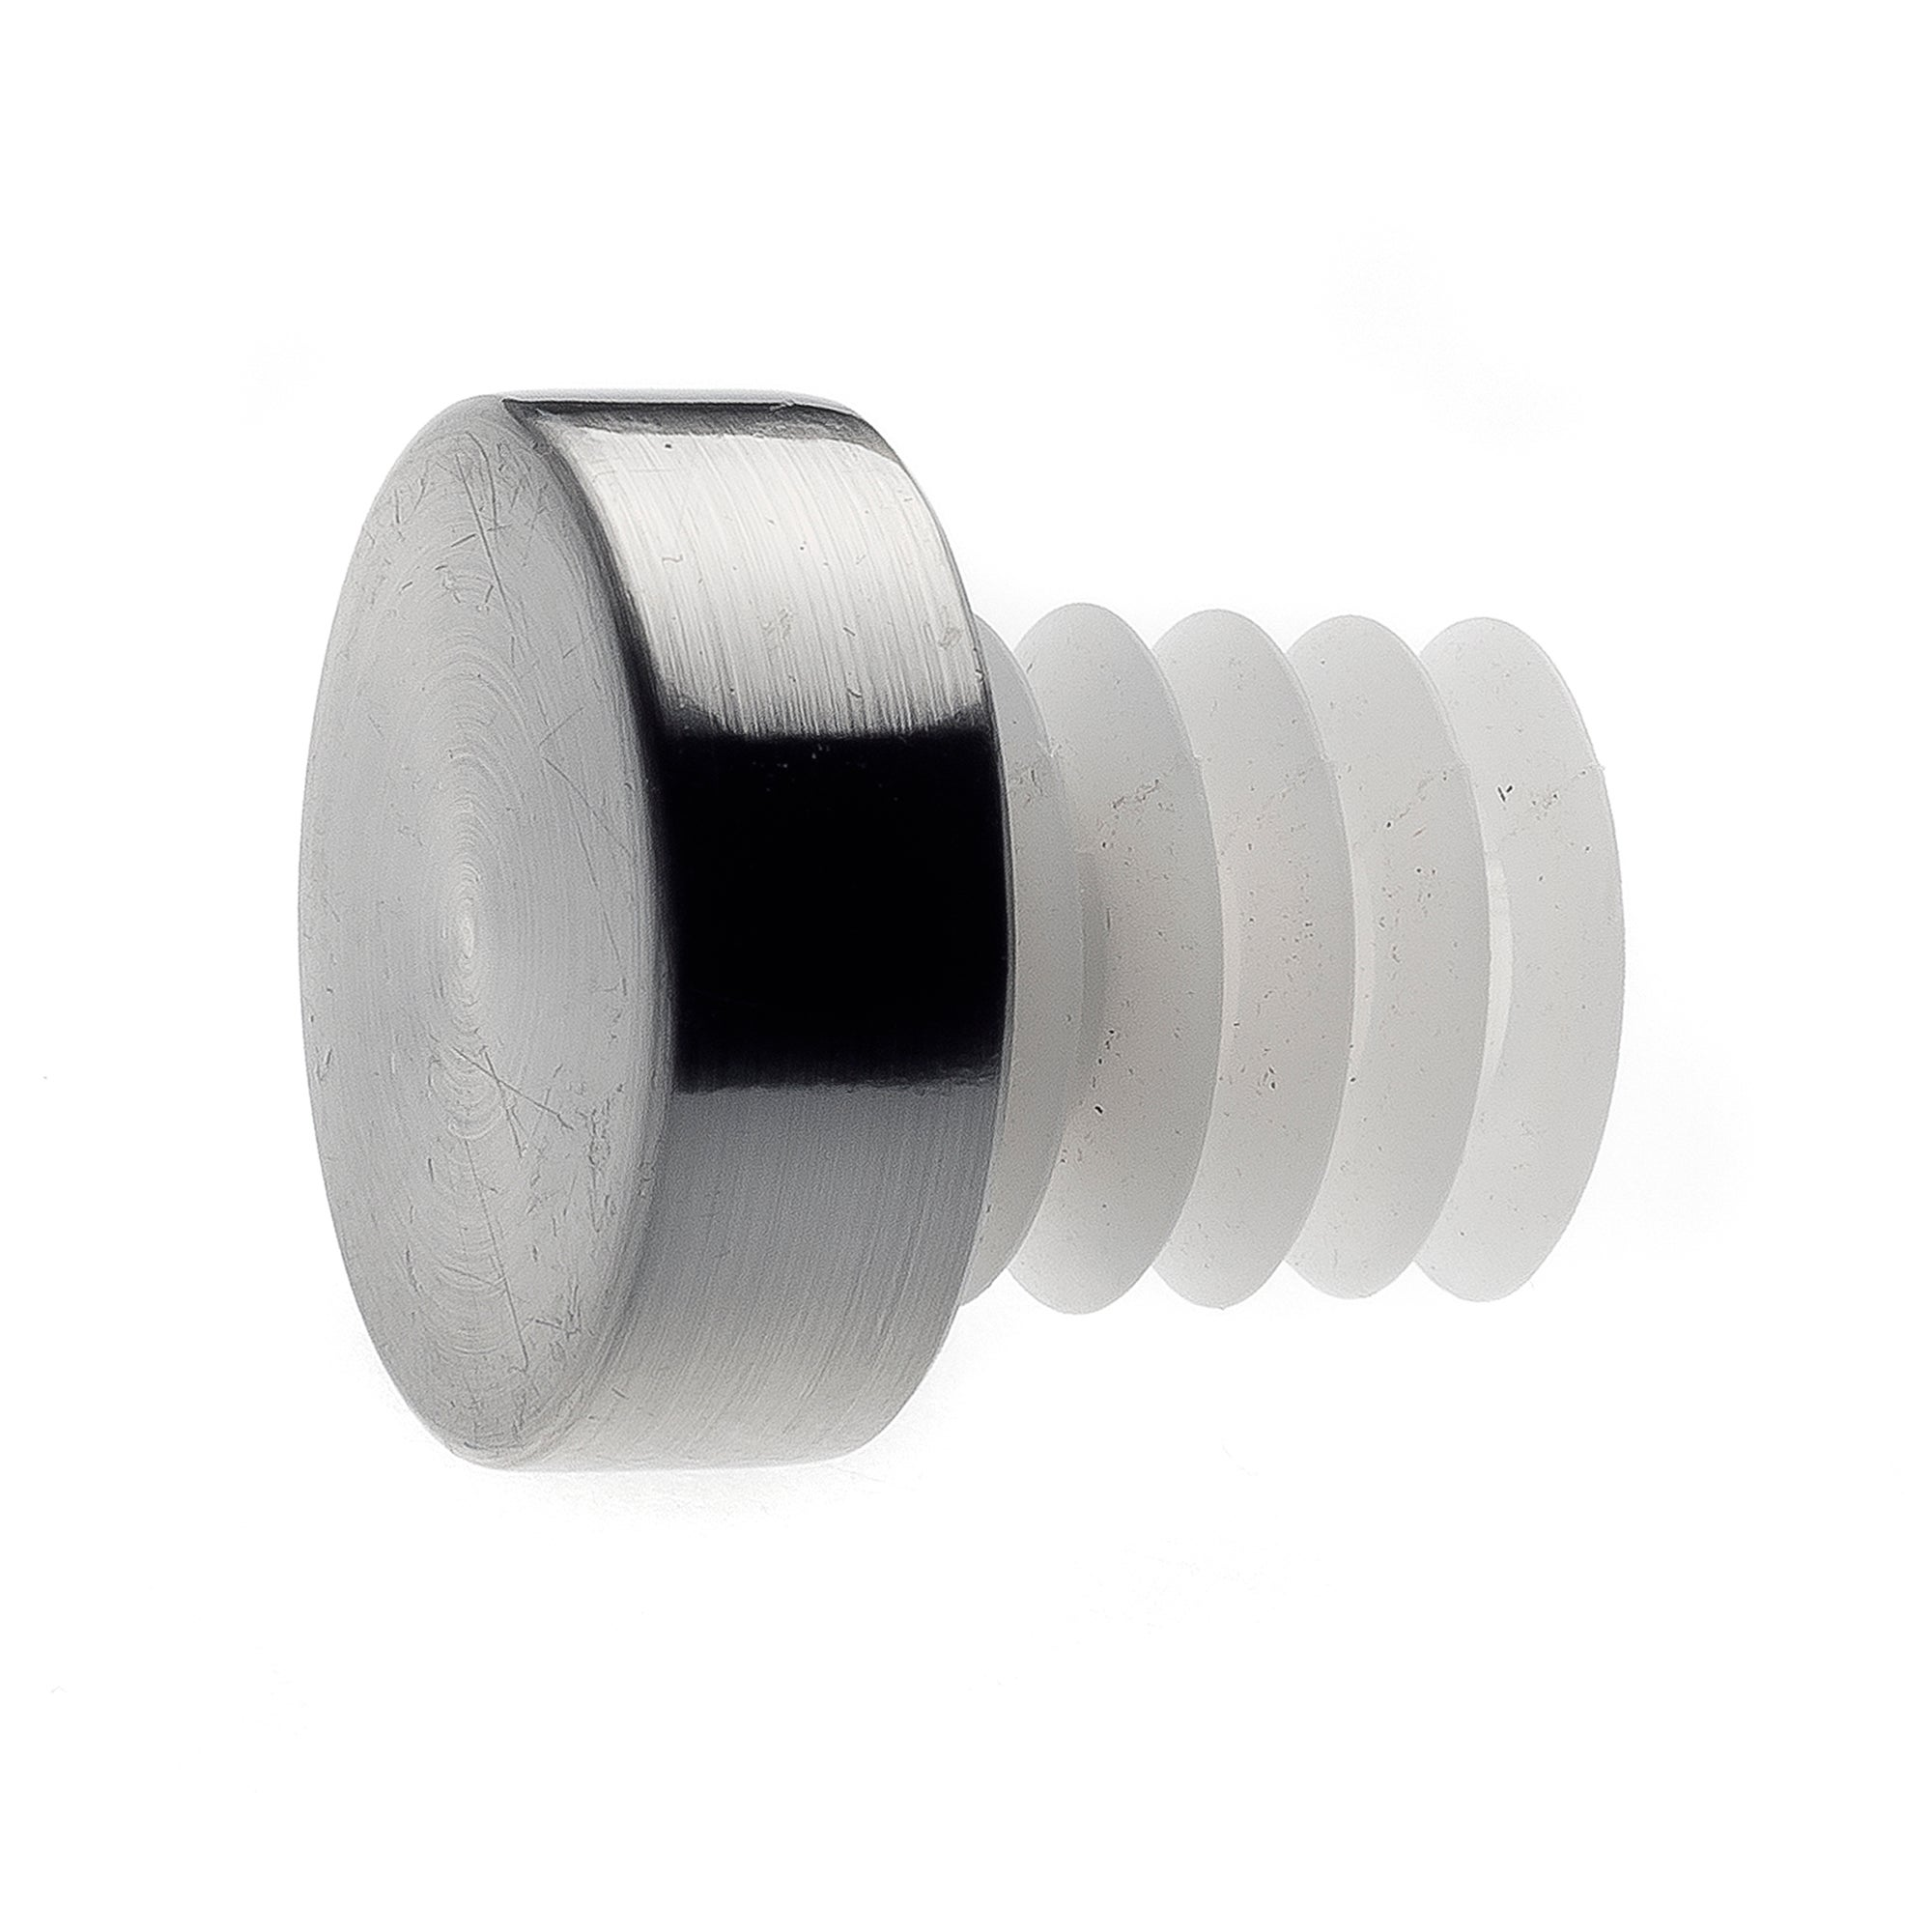 Mix and Match Collection Satin Steel Stud Finials